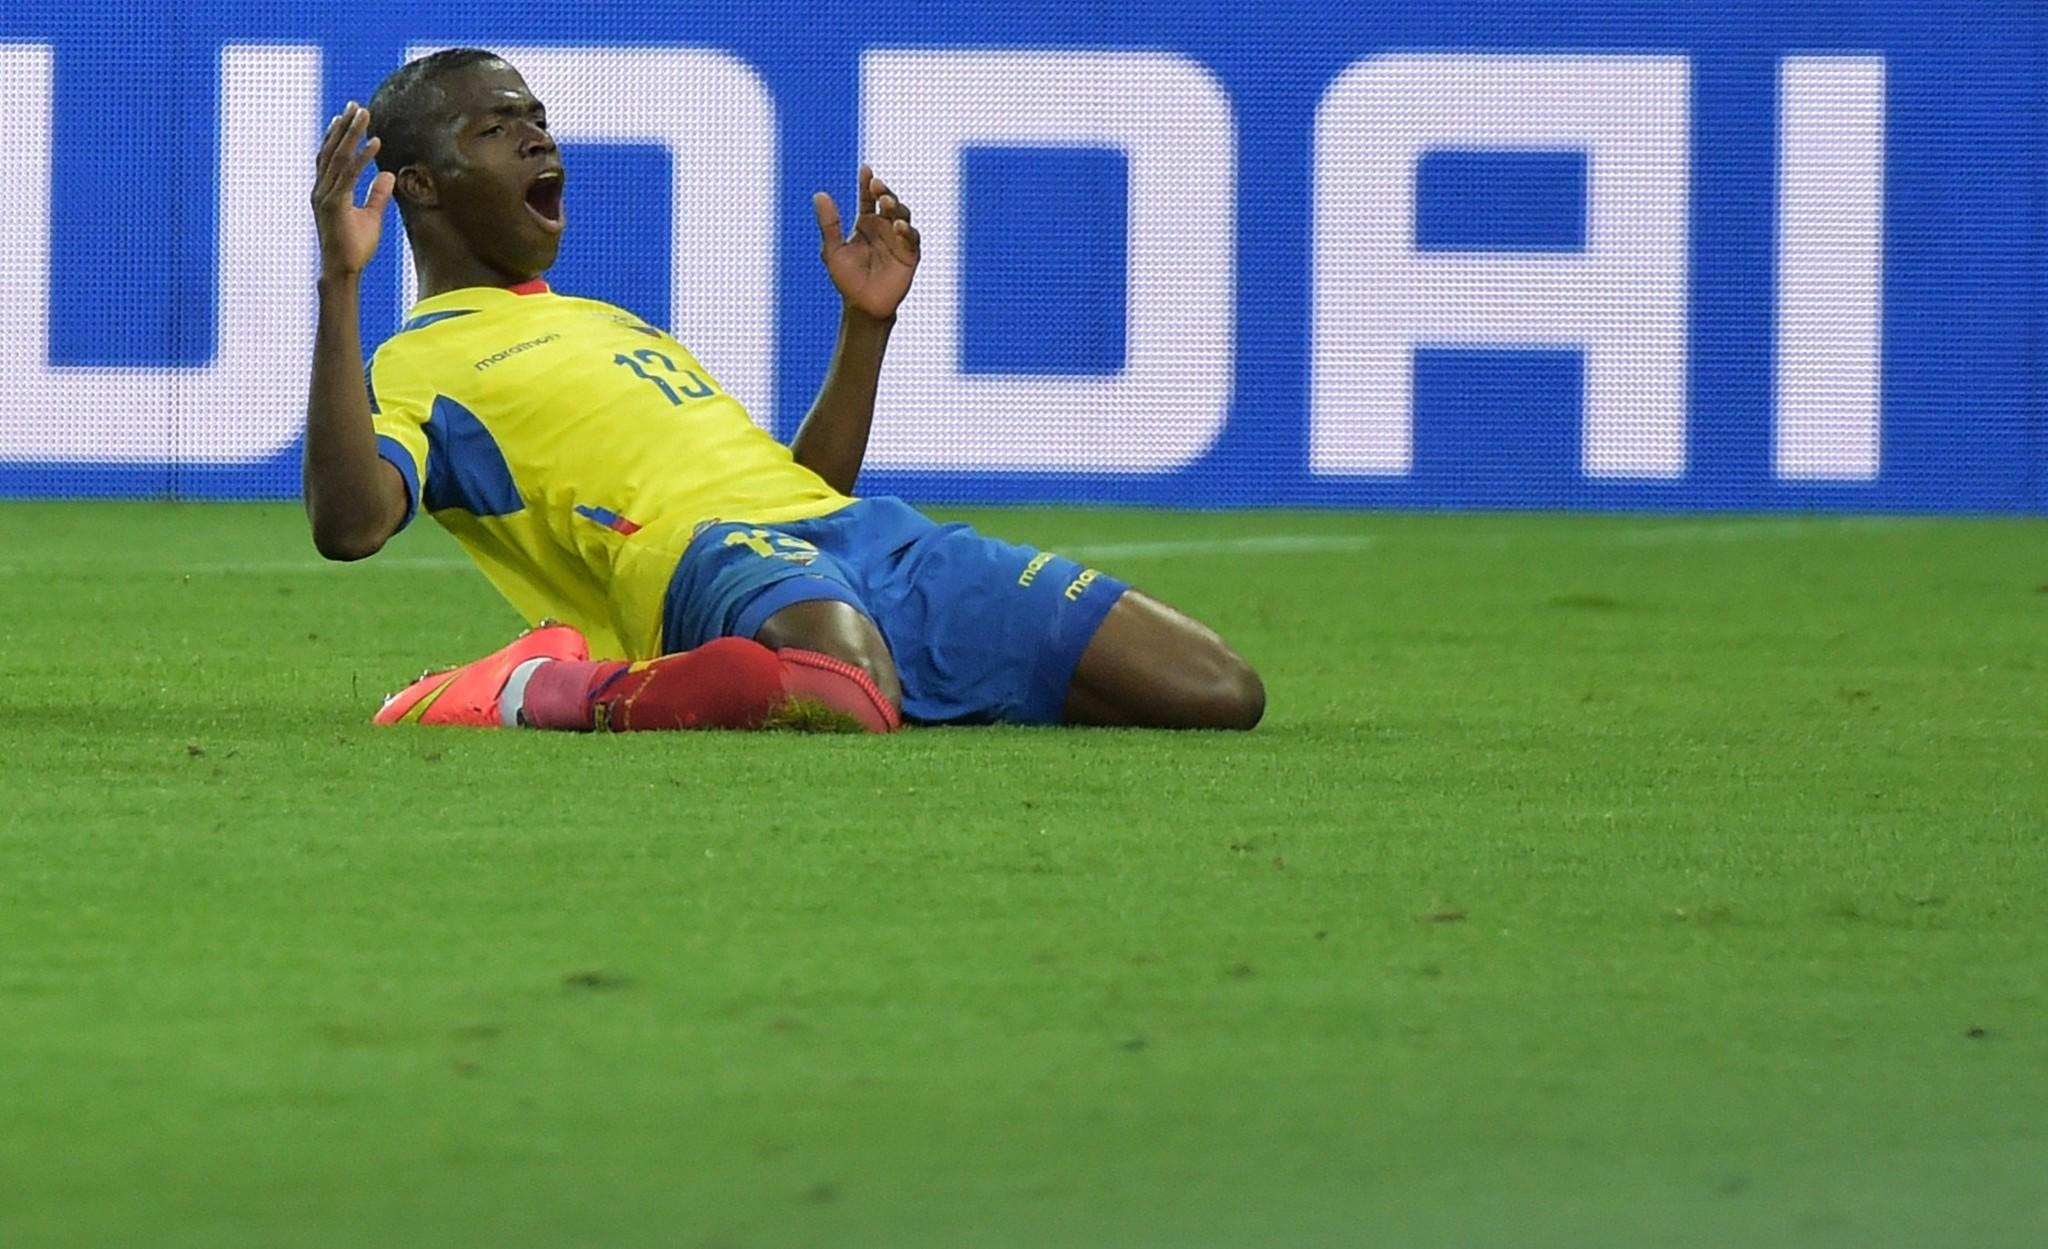 Ecuador forward Enner Valencia celebrates after scoring a second goal during a Group E football match between Honduras and Ecuador during the 2014 FIFA World Cup on June 20.